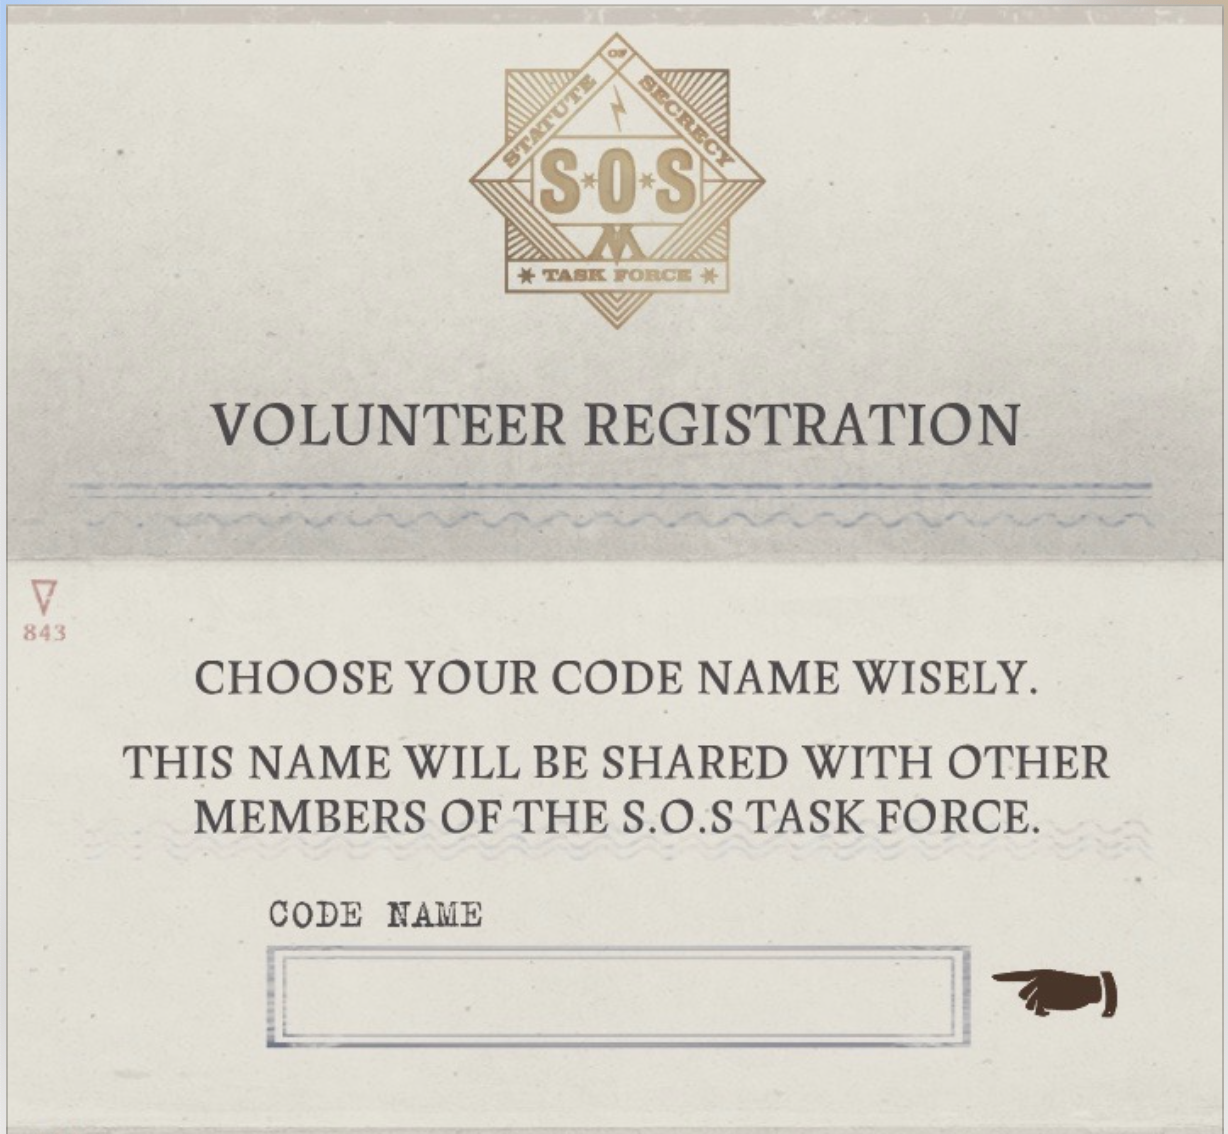 Harry Potter: Wizards Unite' Guide to Choosing Code Name